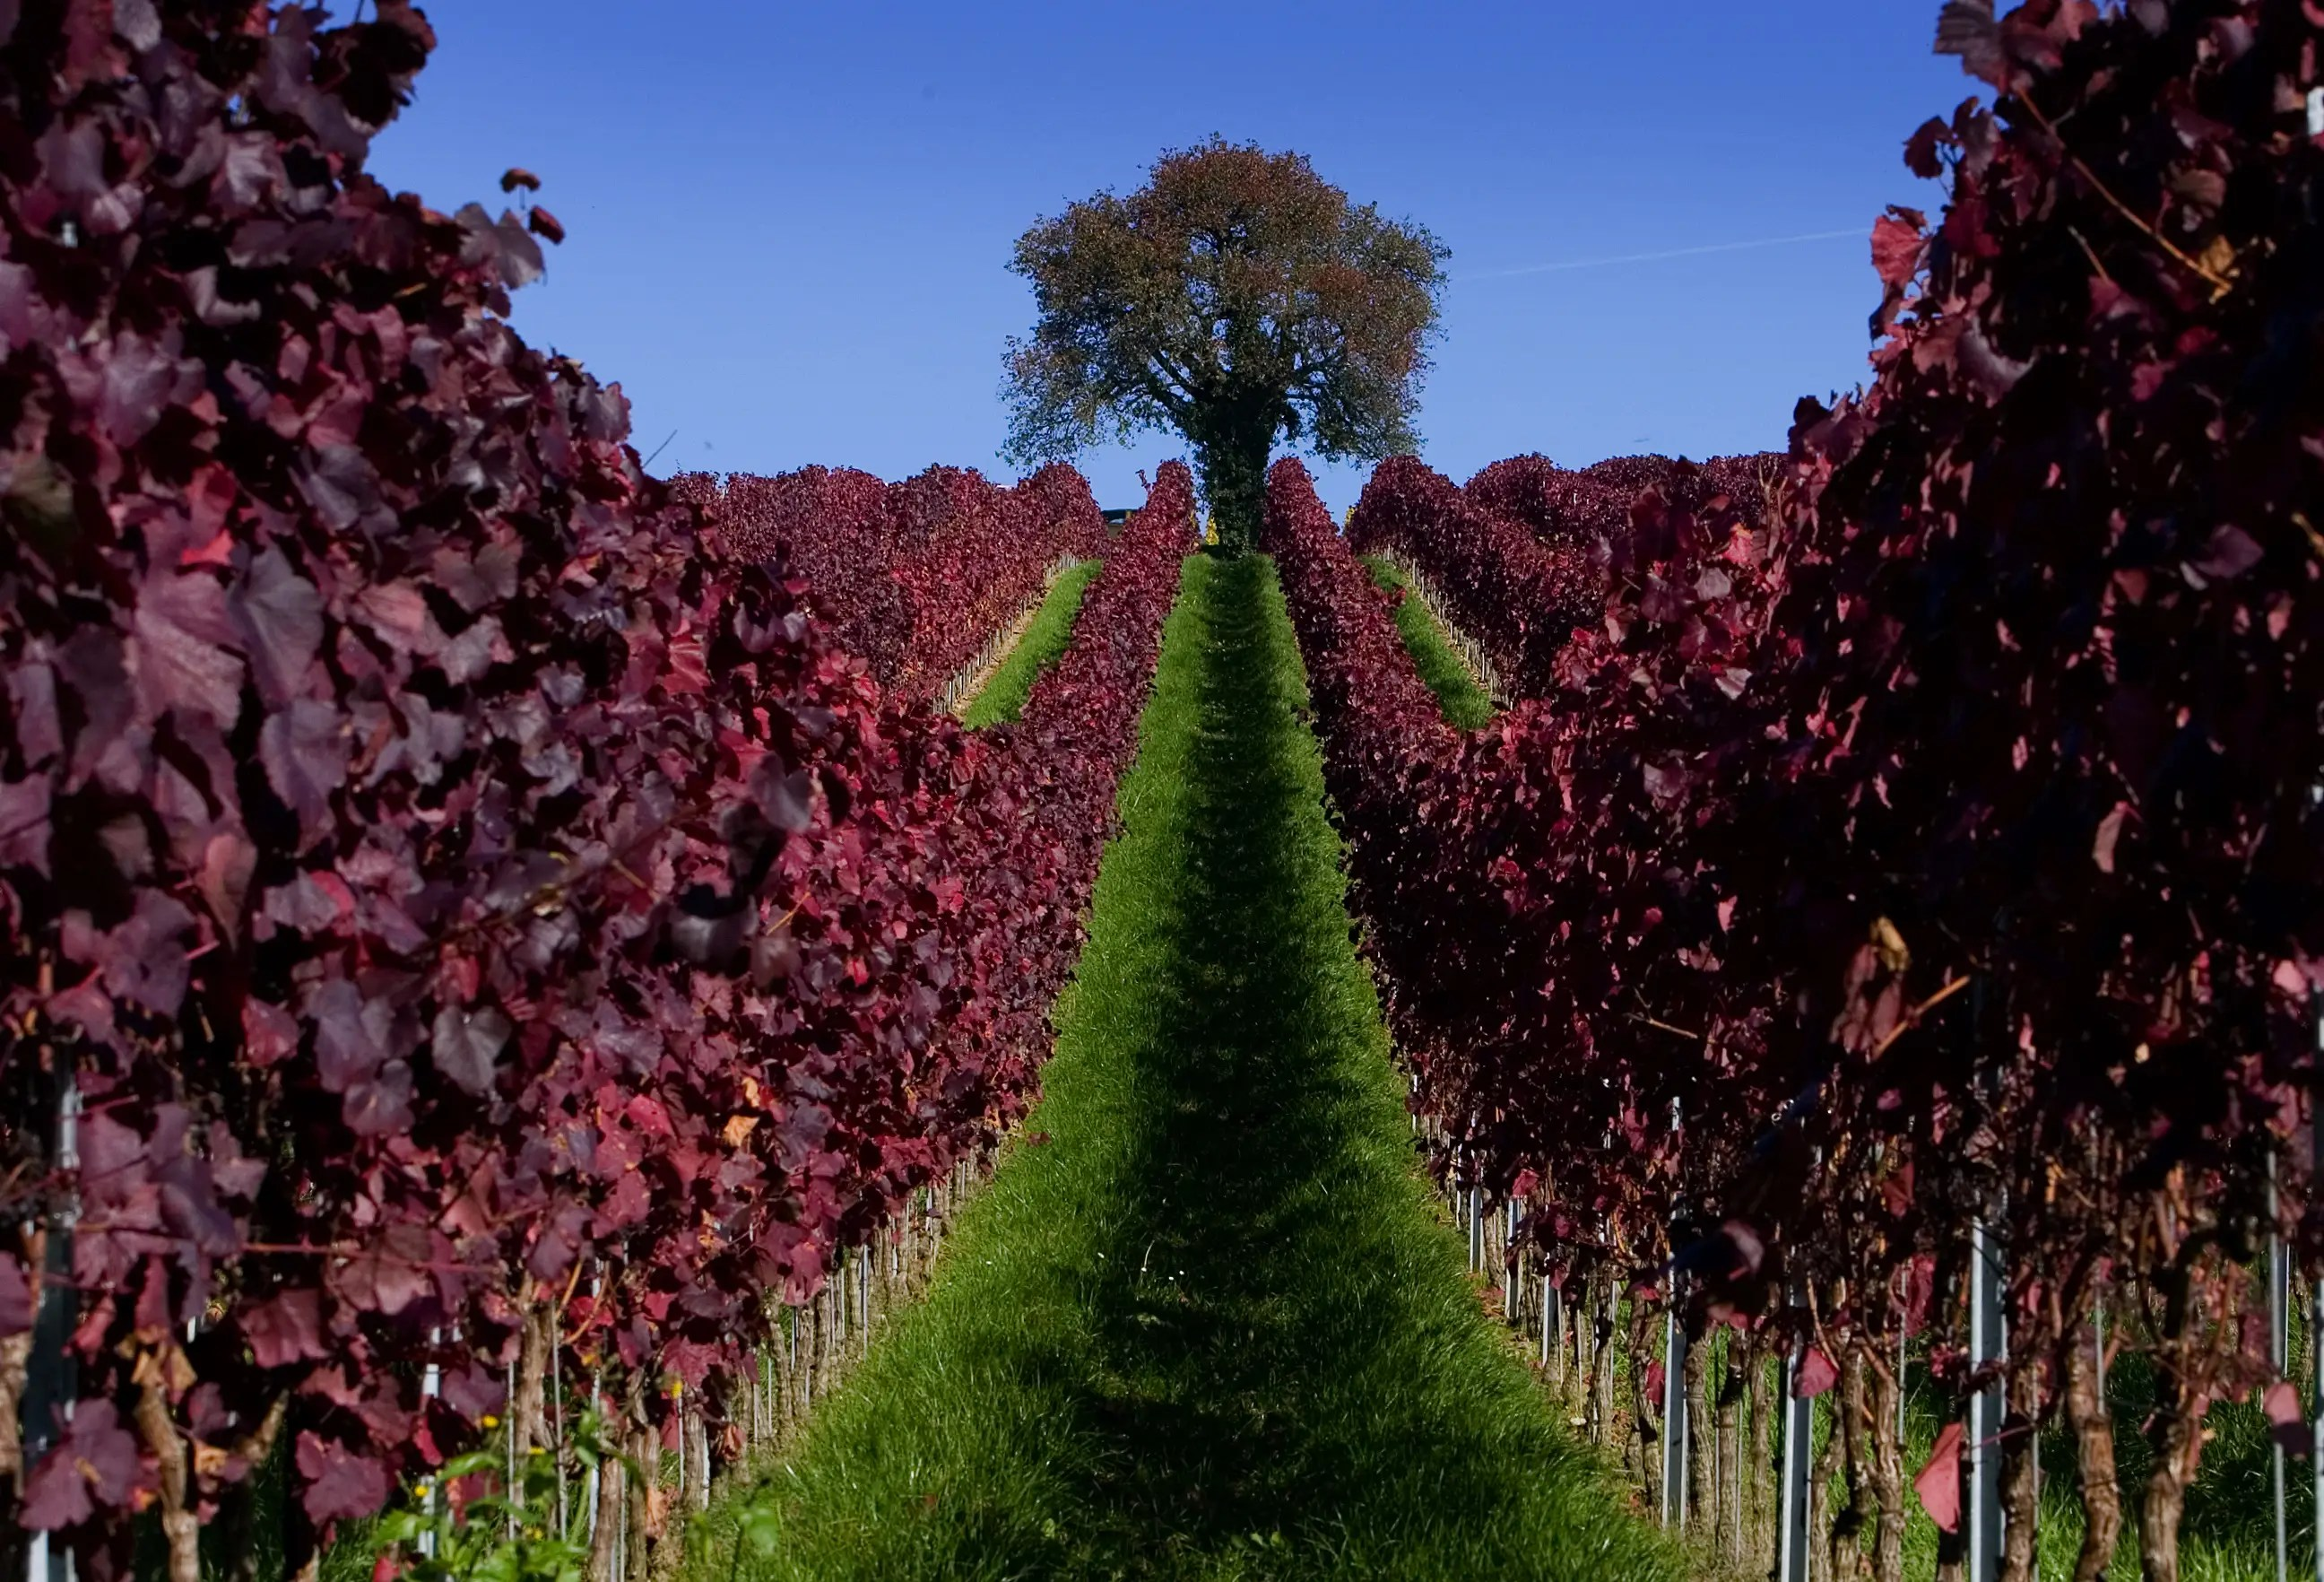 Leaves are colored red in a vineyard during a sunny autumn day near Ueberlingen in Germany.